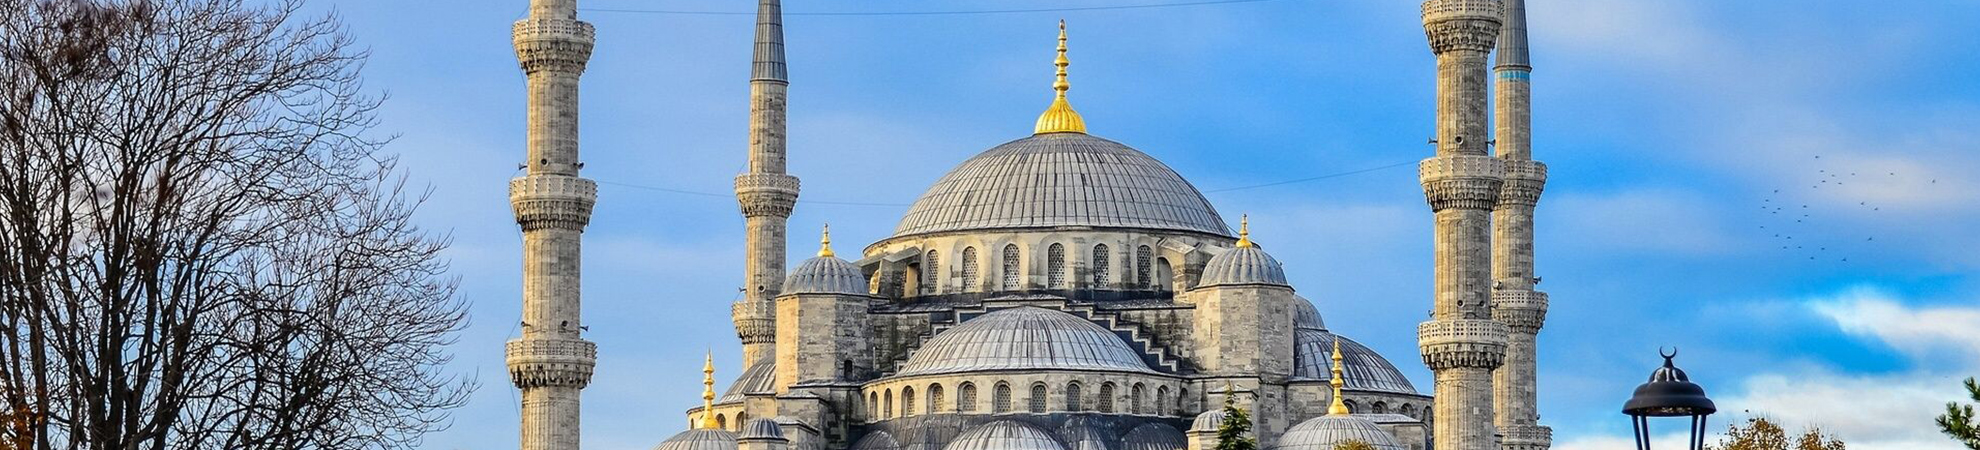 "<h3 style=""padding-left: 20px;margin-top:15px;color: #ffffff;""> Starting From 150 BD for 2 nights and 3 days in Istanbul</h3> <p style=""padding-left: 20px;font-size:16px;margin-top:15px;"">Terms & Conditions Apply, Call Us for Details </p>"